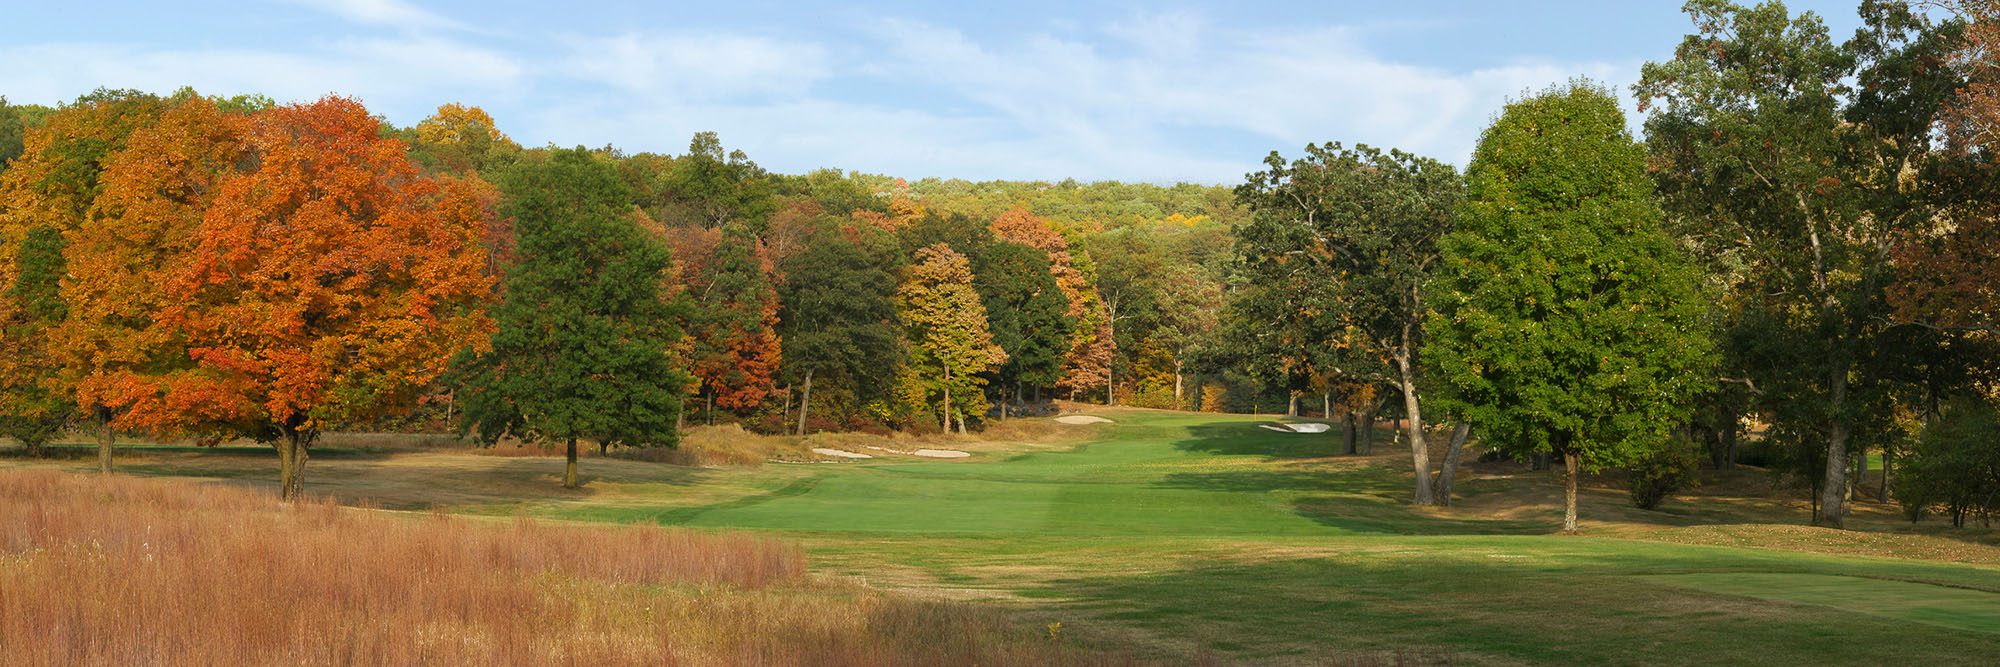 Golf Course Image - The Tuxedo Club No. 8